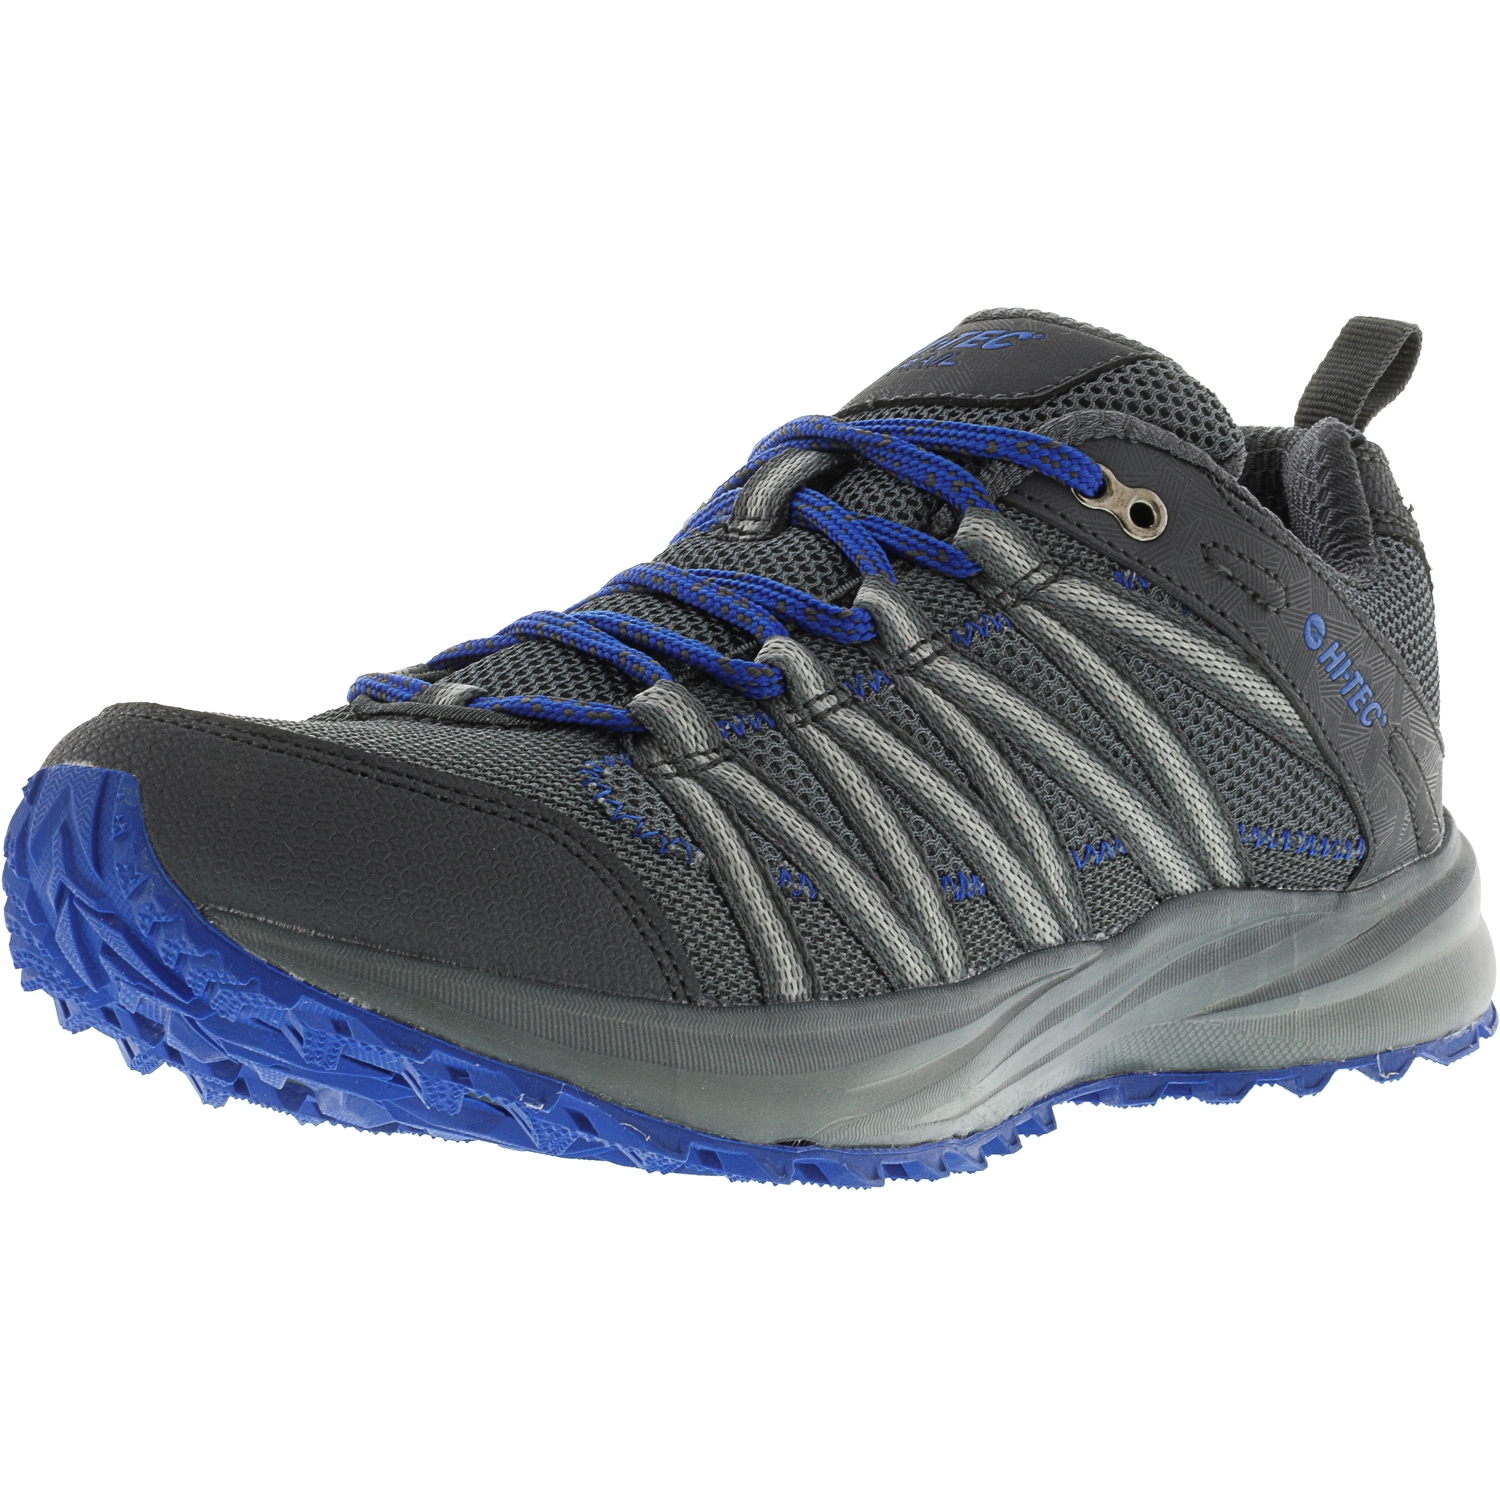 Hi-Tec Men's Sensor Trail Lite Graphite   Cobalt Ankle-High Runner 8M by Hi-Tec